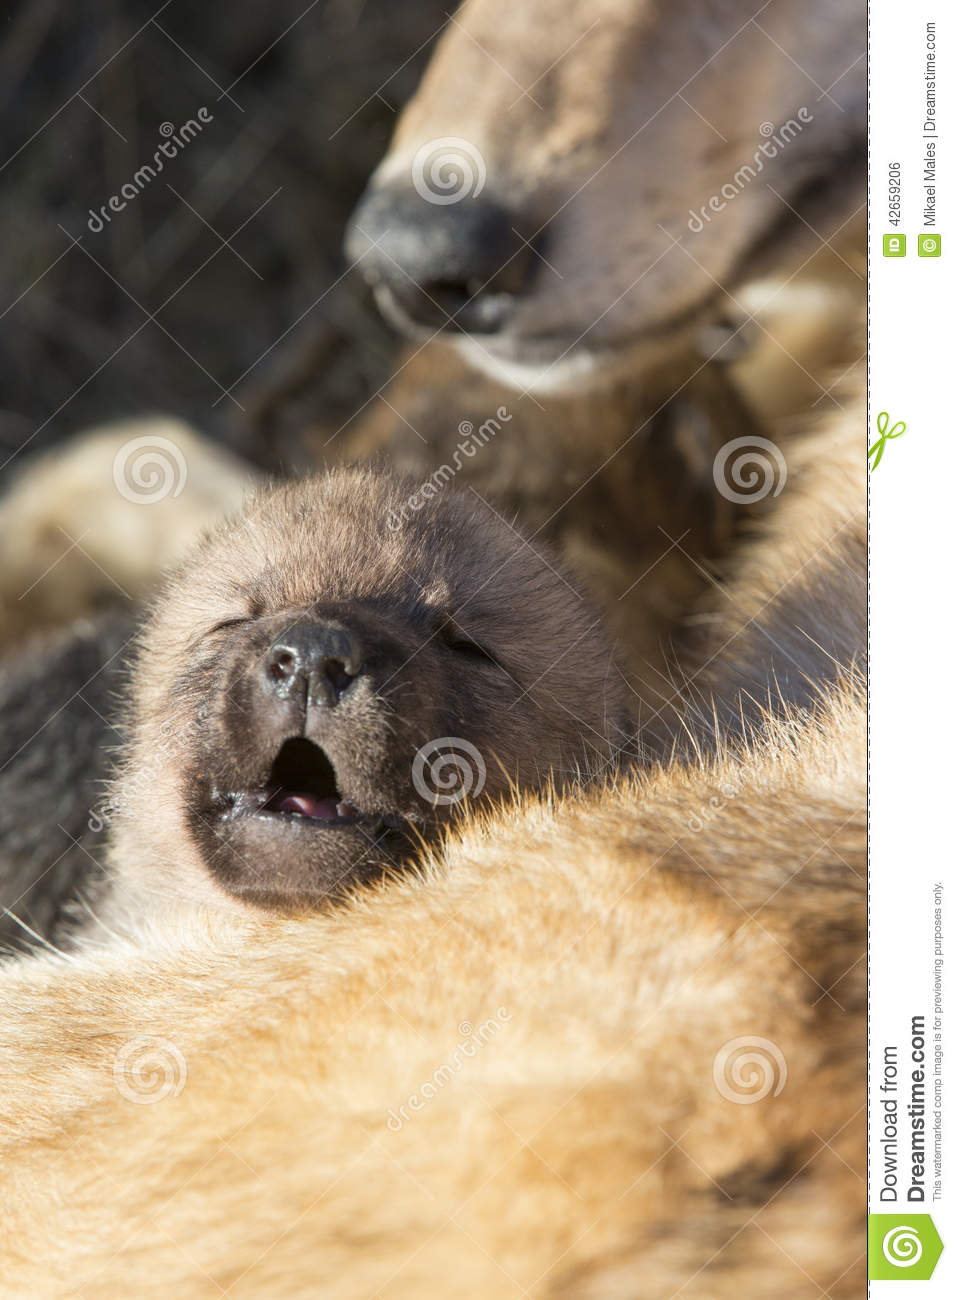 Stock Photo Wolf Pup Vocalizing Mother Resting Image42659206